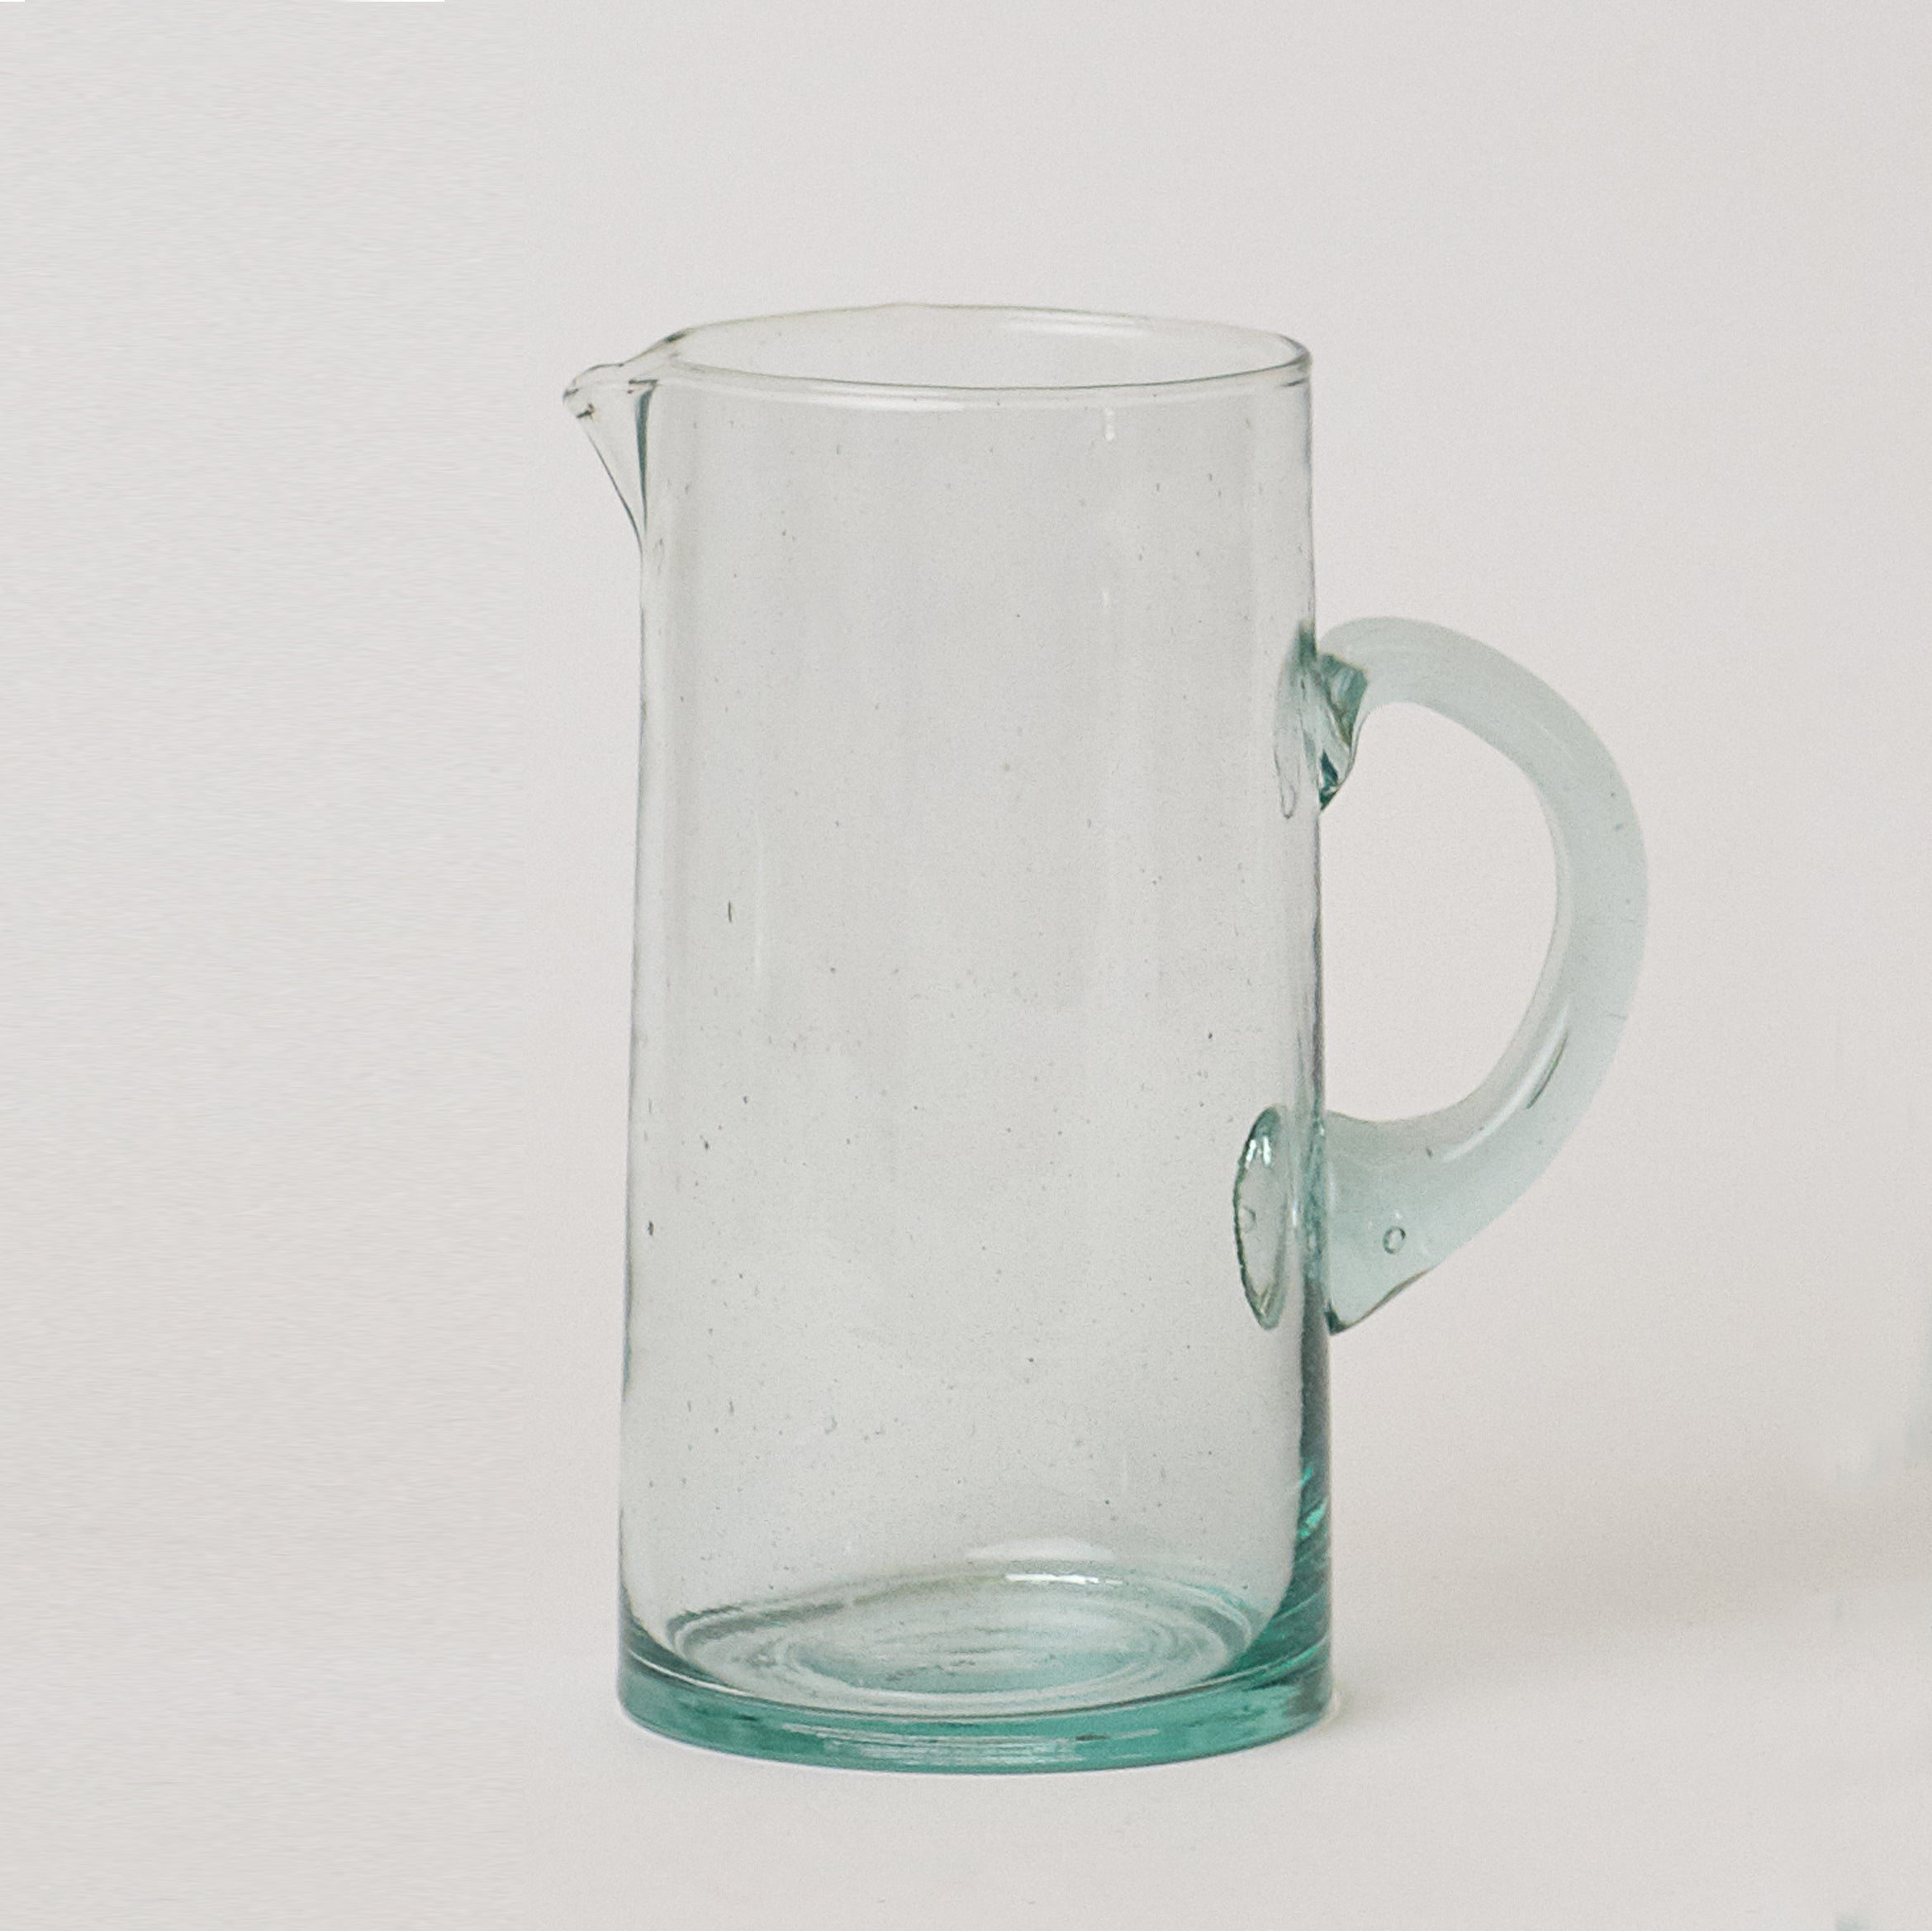 Hand blown Moroccan glass carafe with shaped spout and sturdy handle.  The one of a kind jug is a unique way to serve decorative drinks.